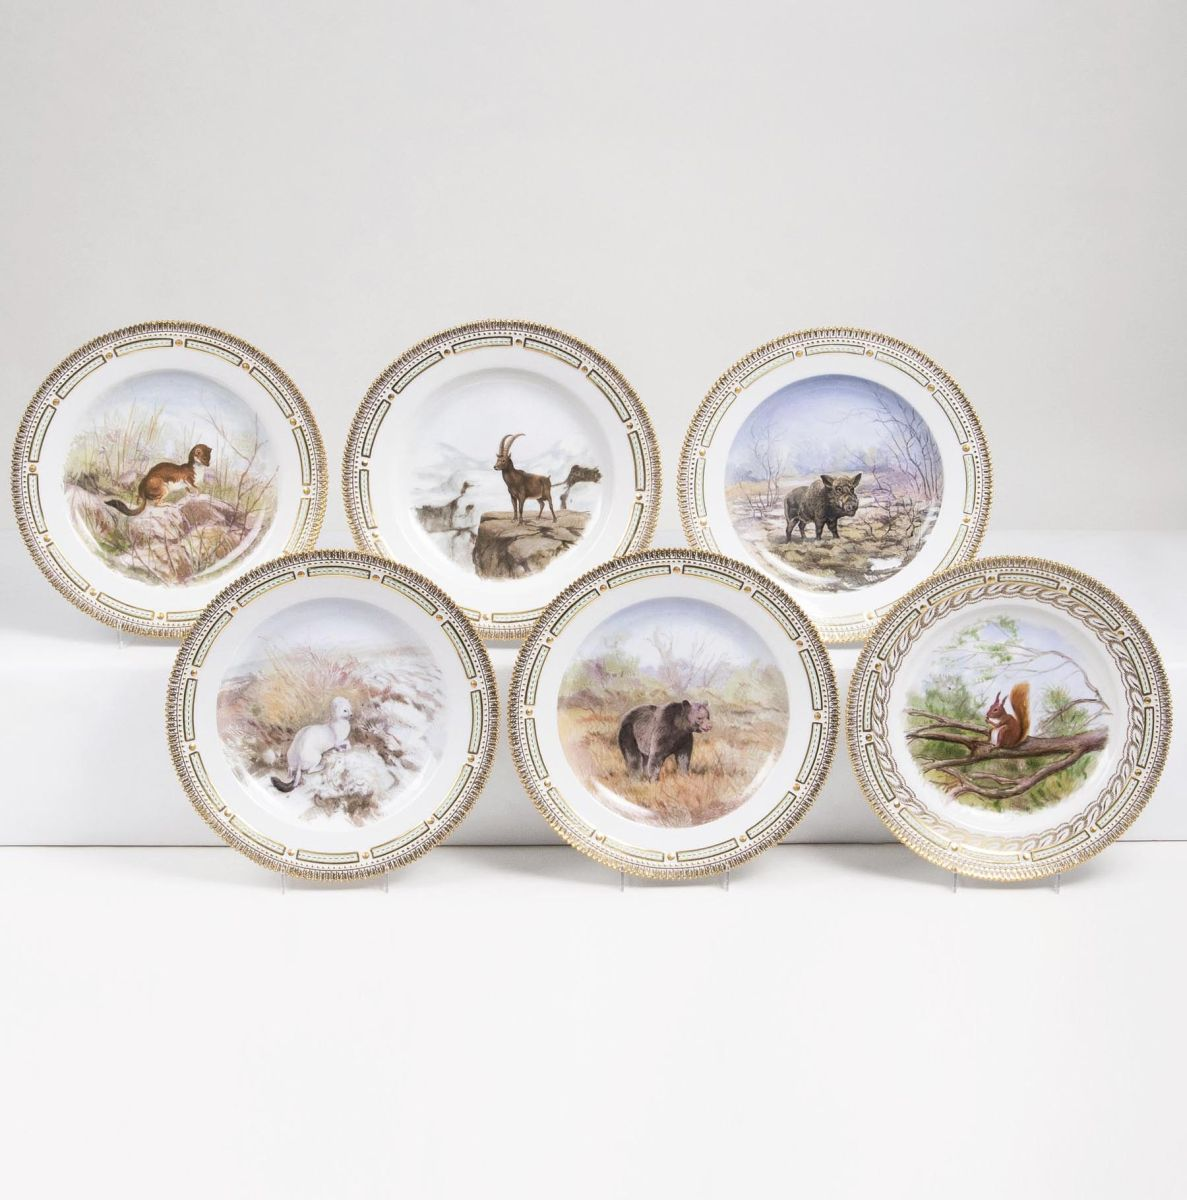 A Set of 6 Flora Danica Dinner Plates with Animals